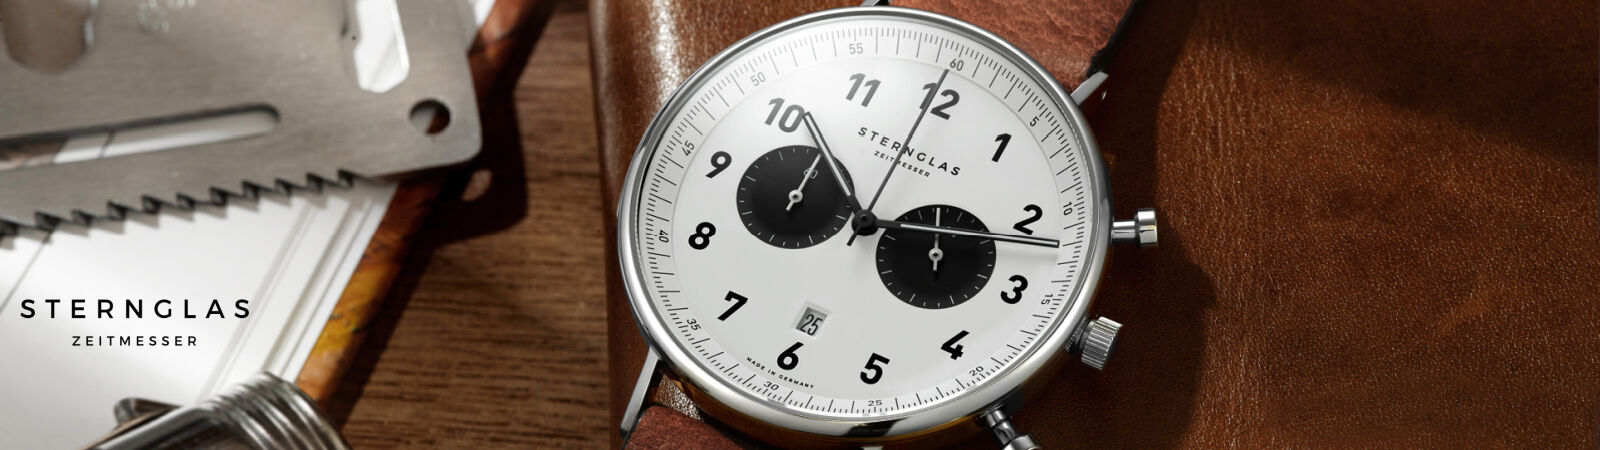 Sternglas Chronographs - Available at Sportique.com